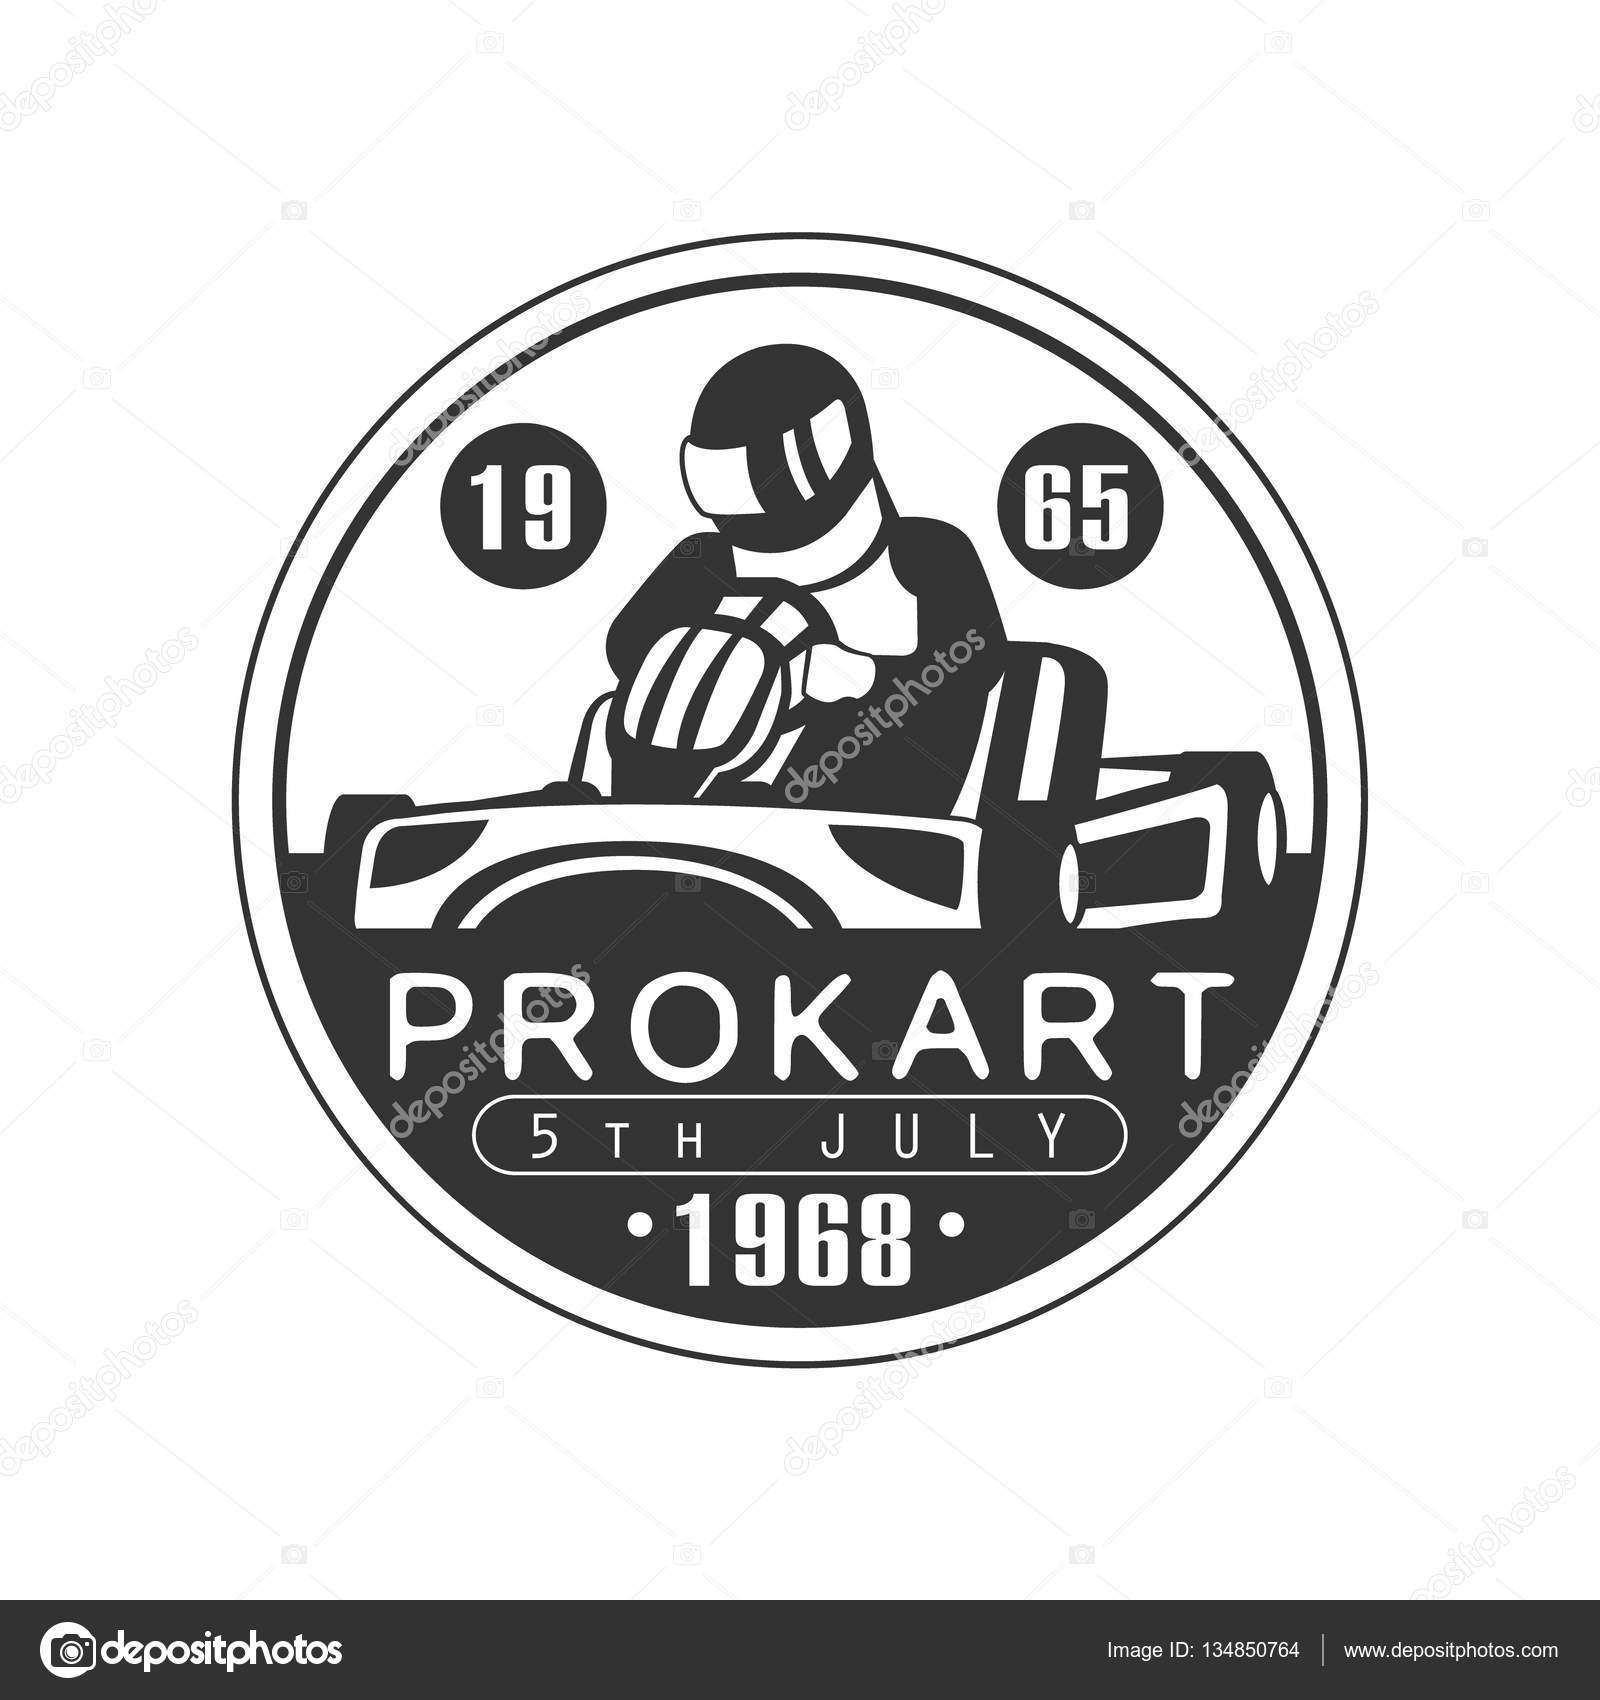 Design car club logo - Prokart Karting Club Black And White Logo Design Template With Rider In Kart Silhouette Monochrome Vector Promo Emblem With Text And Fast Car Print